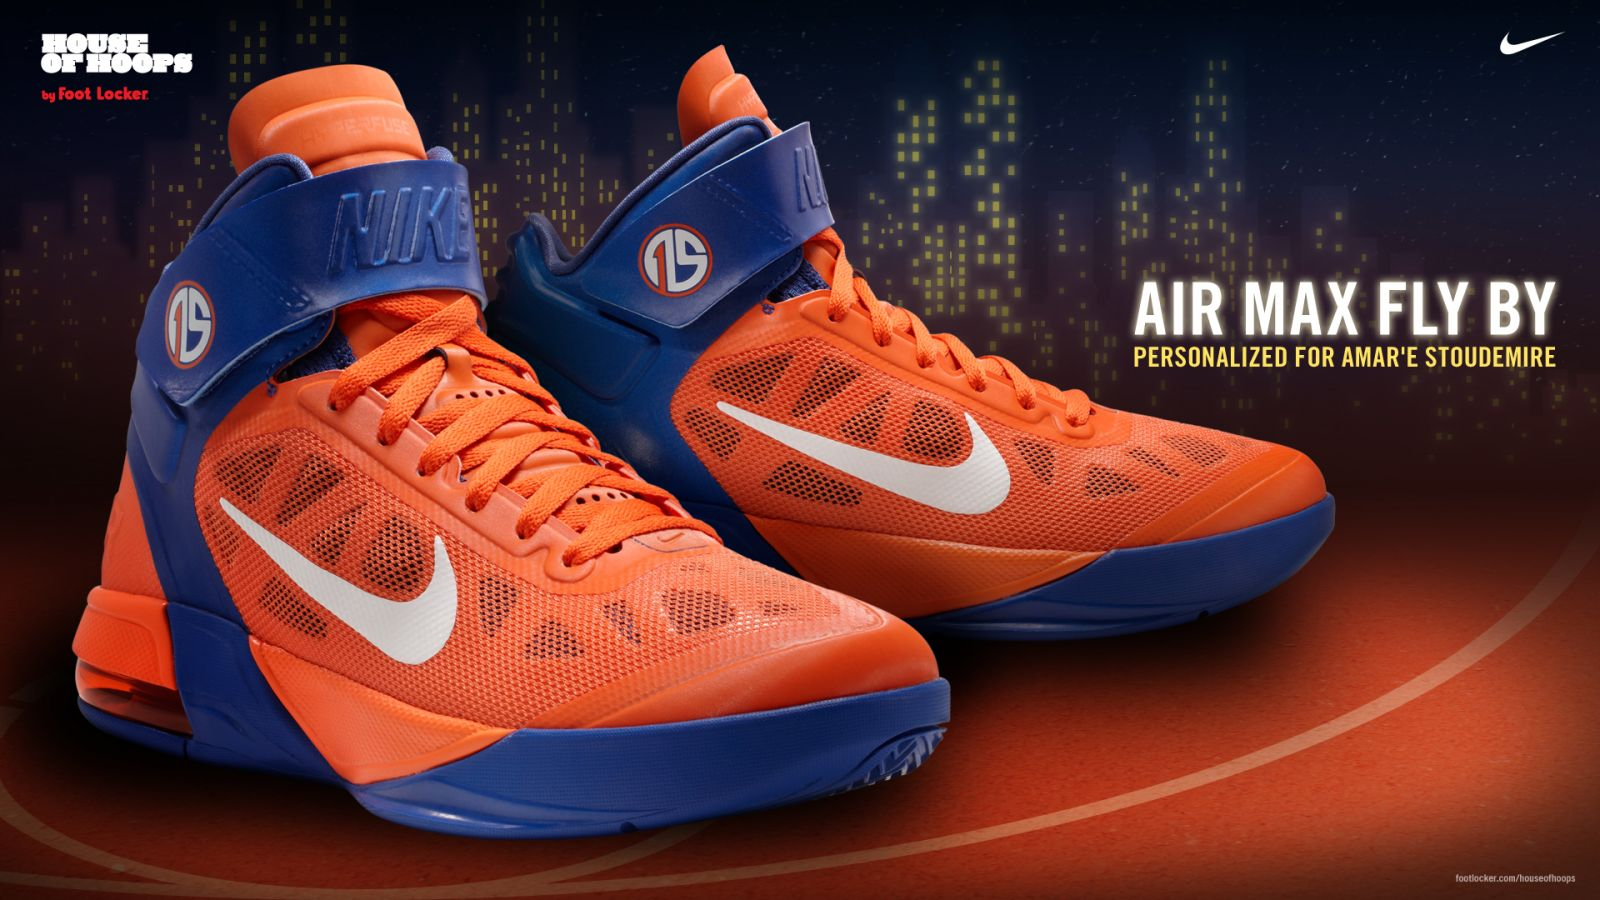 bef863a417a563 Nike Air Max Fly By Amare Stoudemire